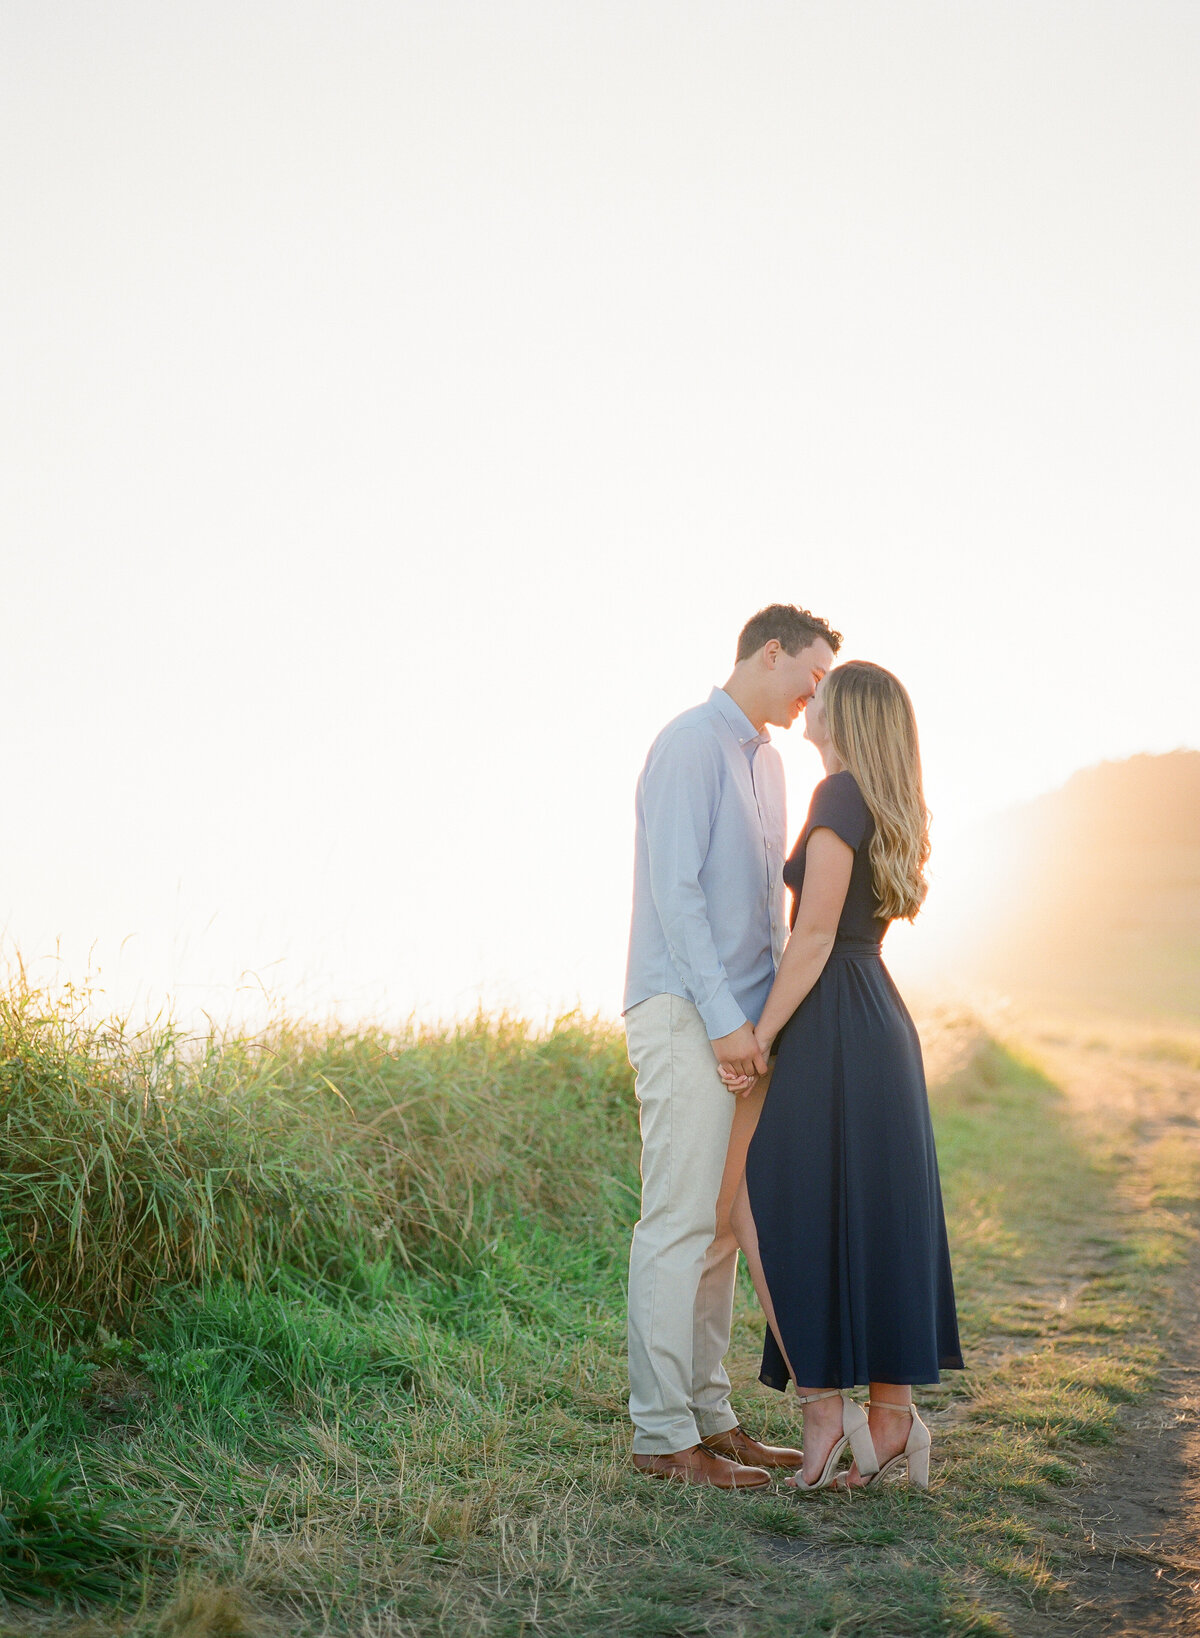 Ellise & Robert - Engagement Session - Tetiana Photography-86